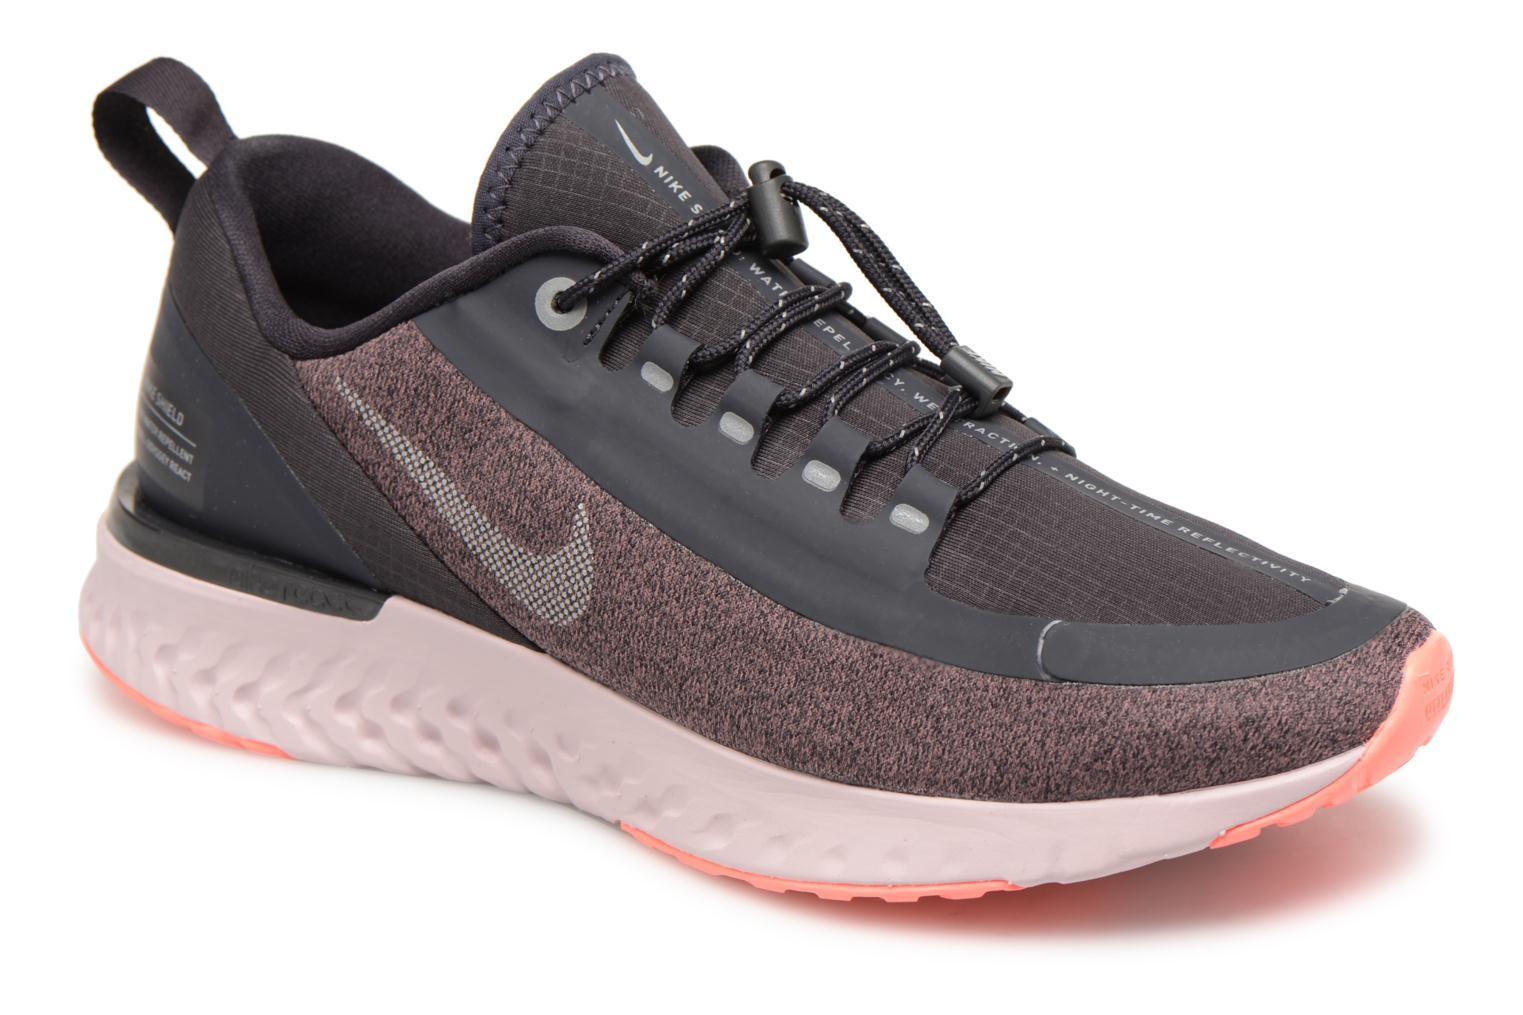 Wmns Odyssey React Shield